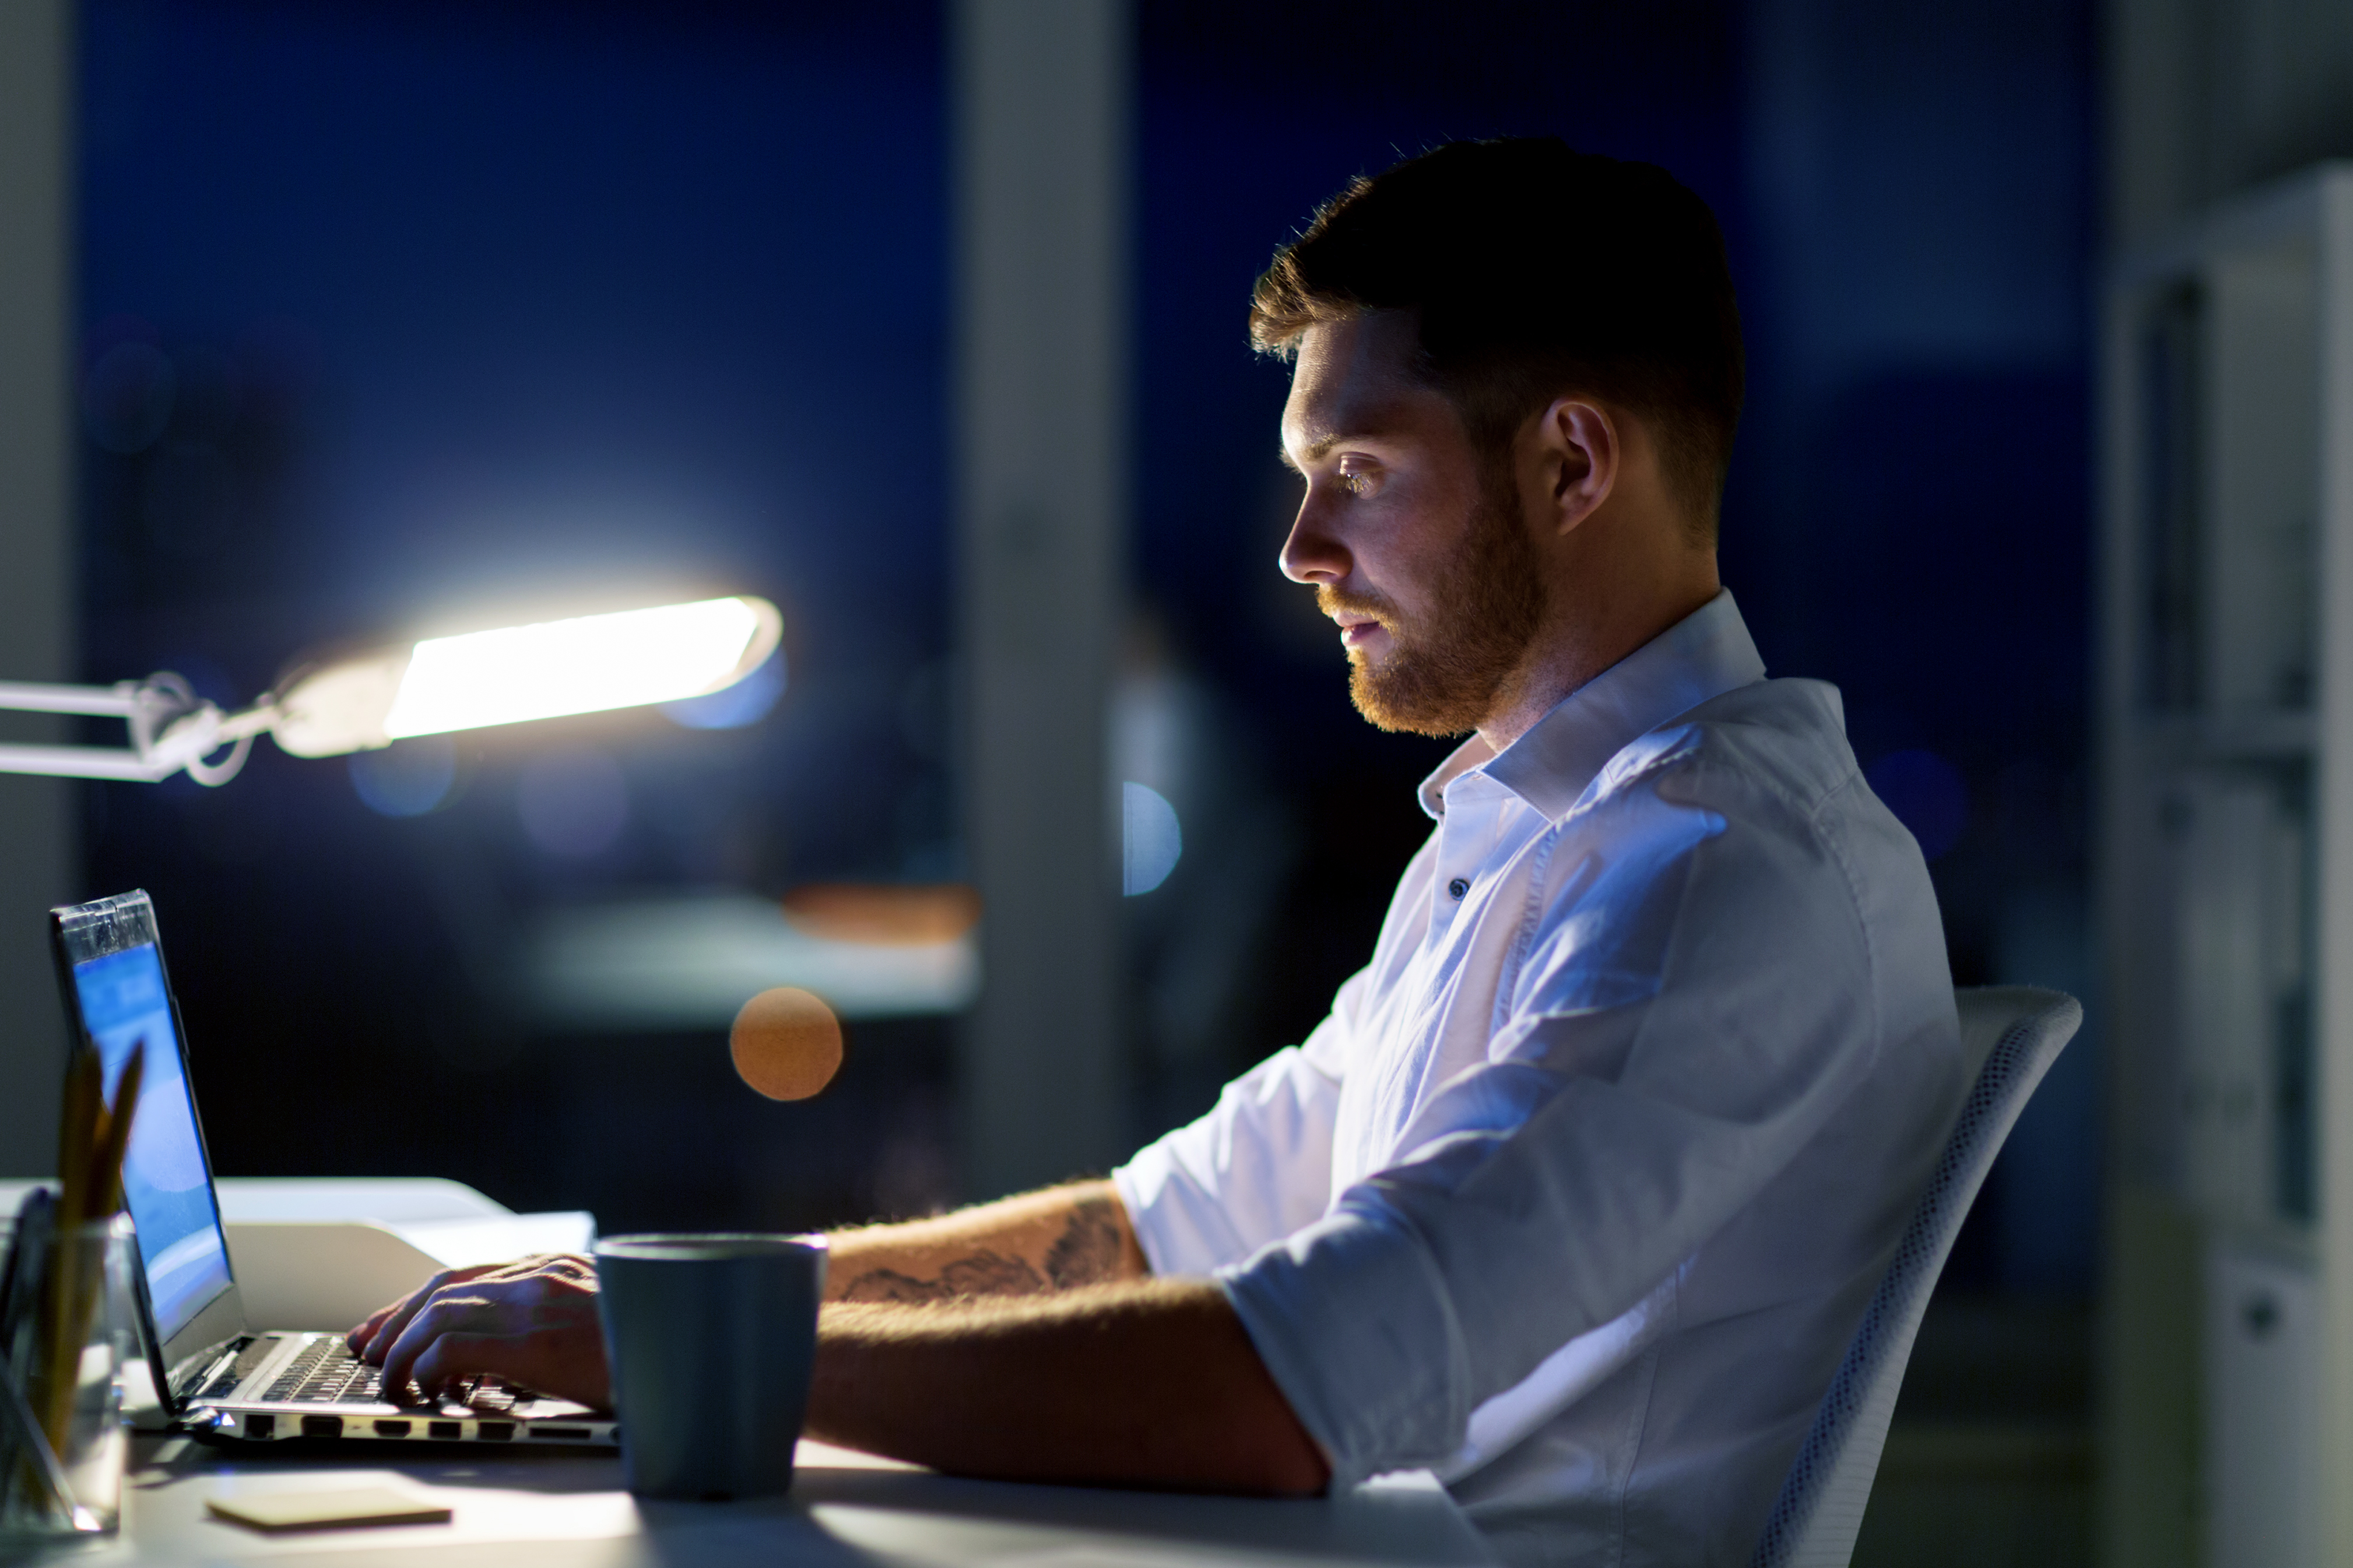 man-with-laptop-and-coffee-working-at-night-PCEBWBR